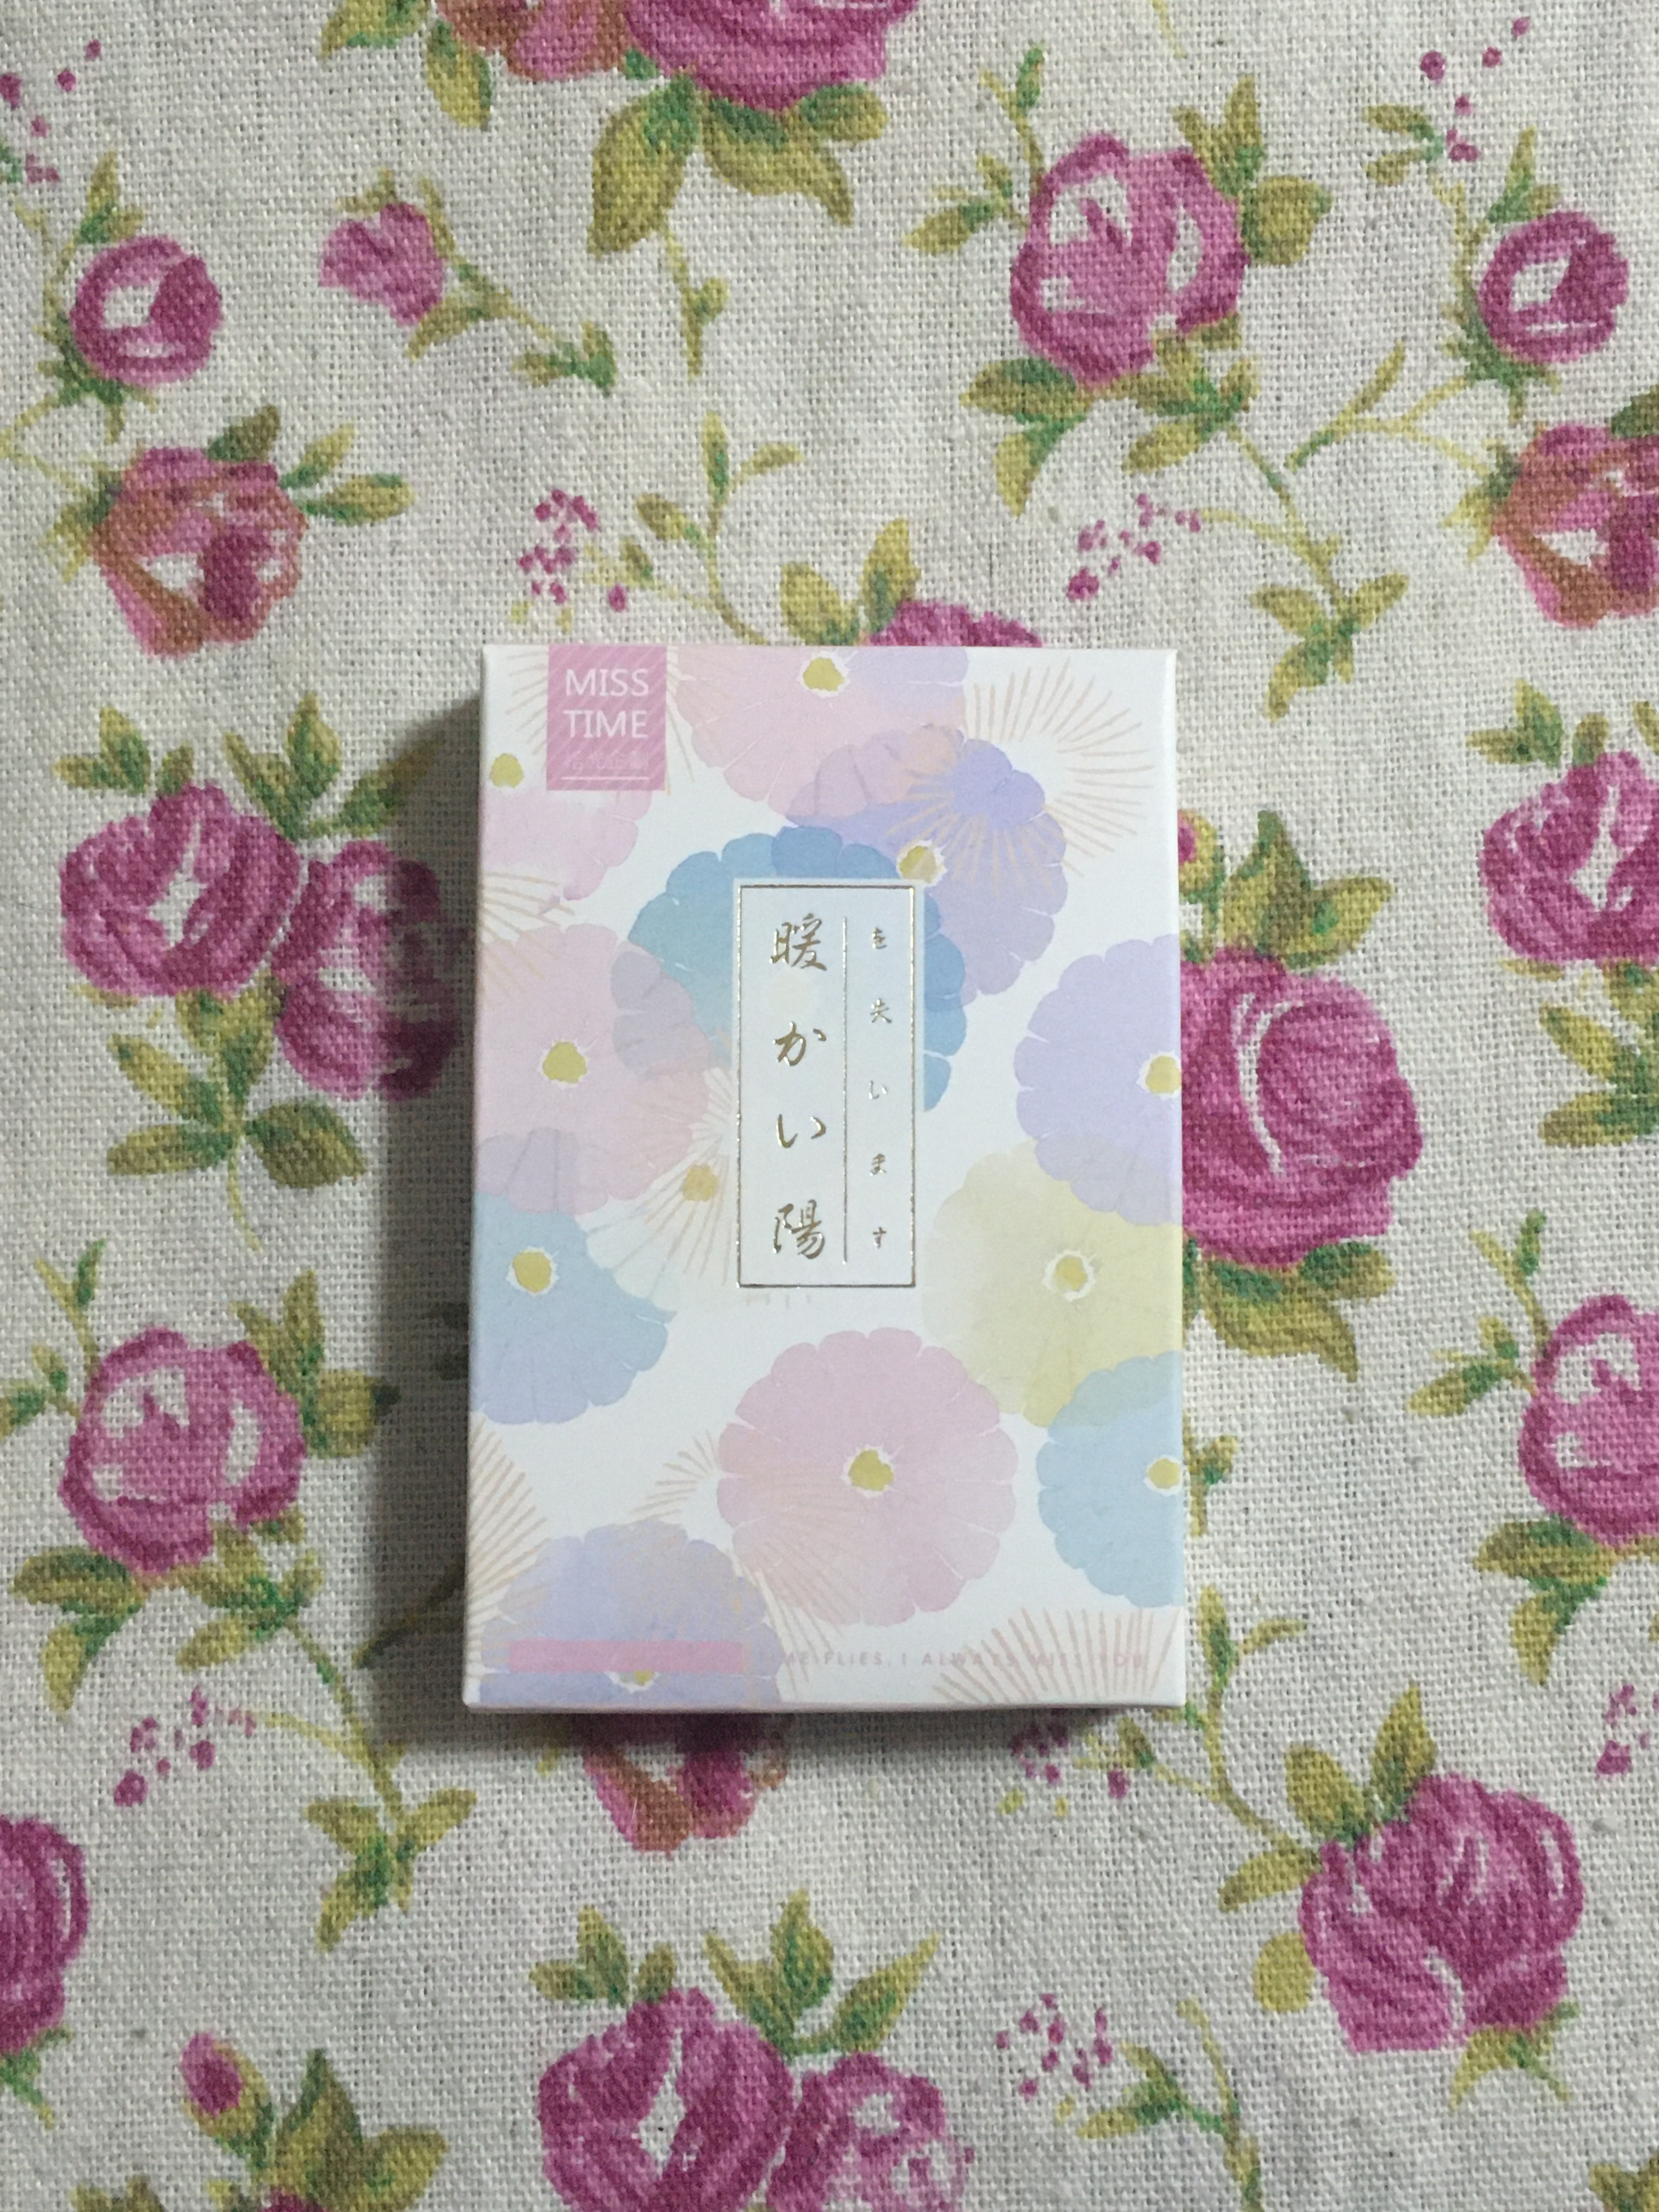 52mm*80mm Warm Sun Paper Greeting Card Lomo Card(1pack=28pieces)